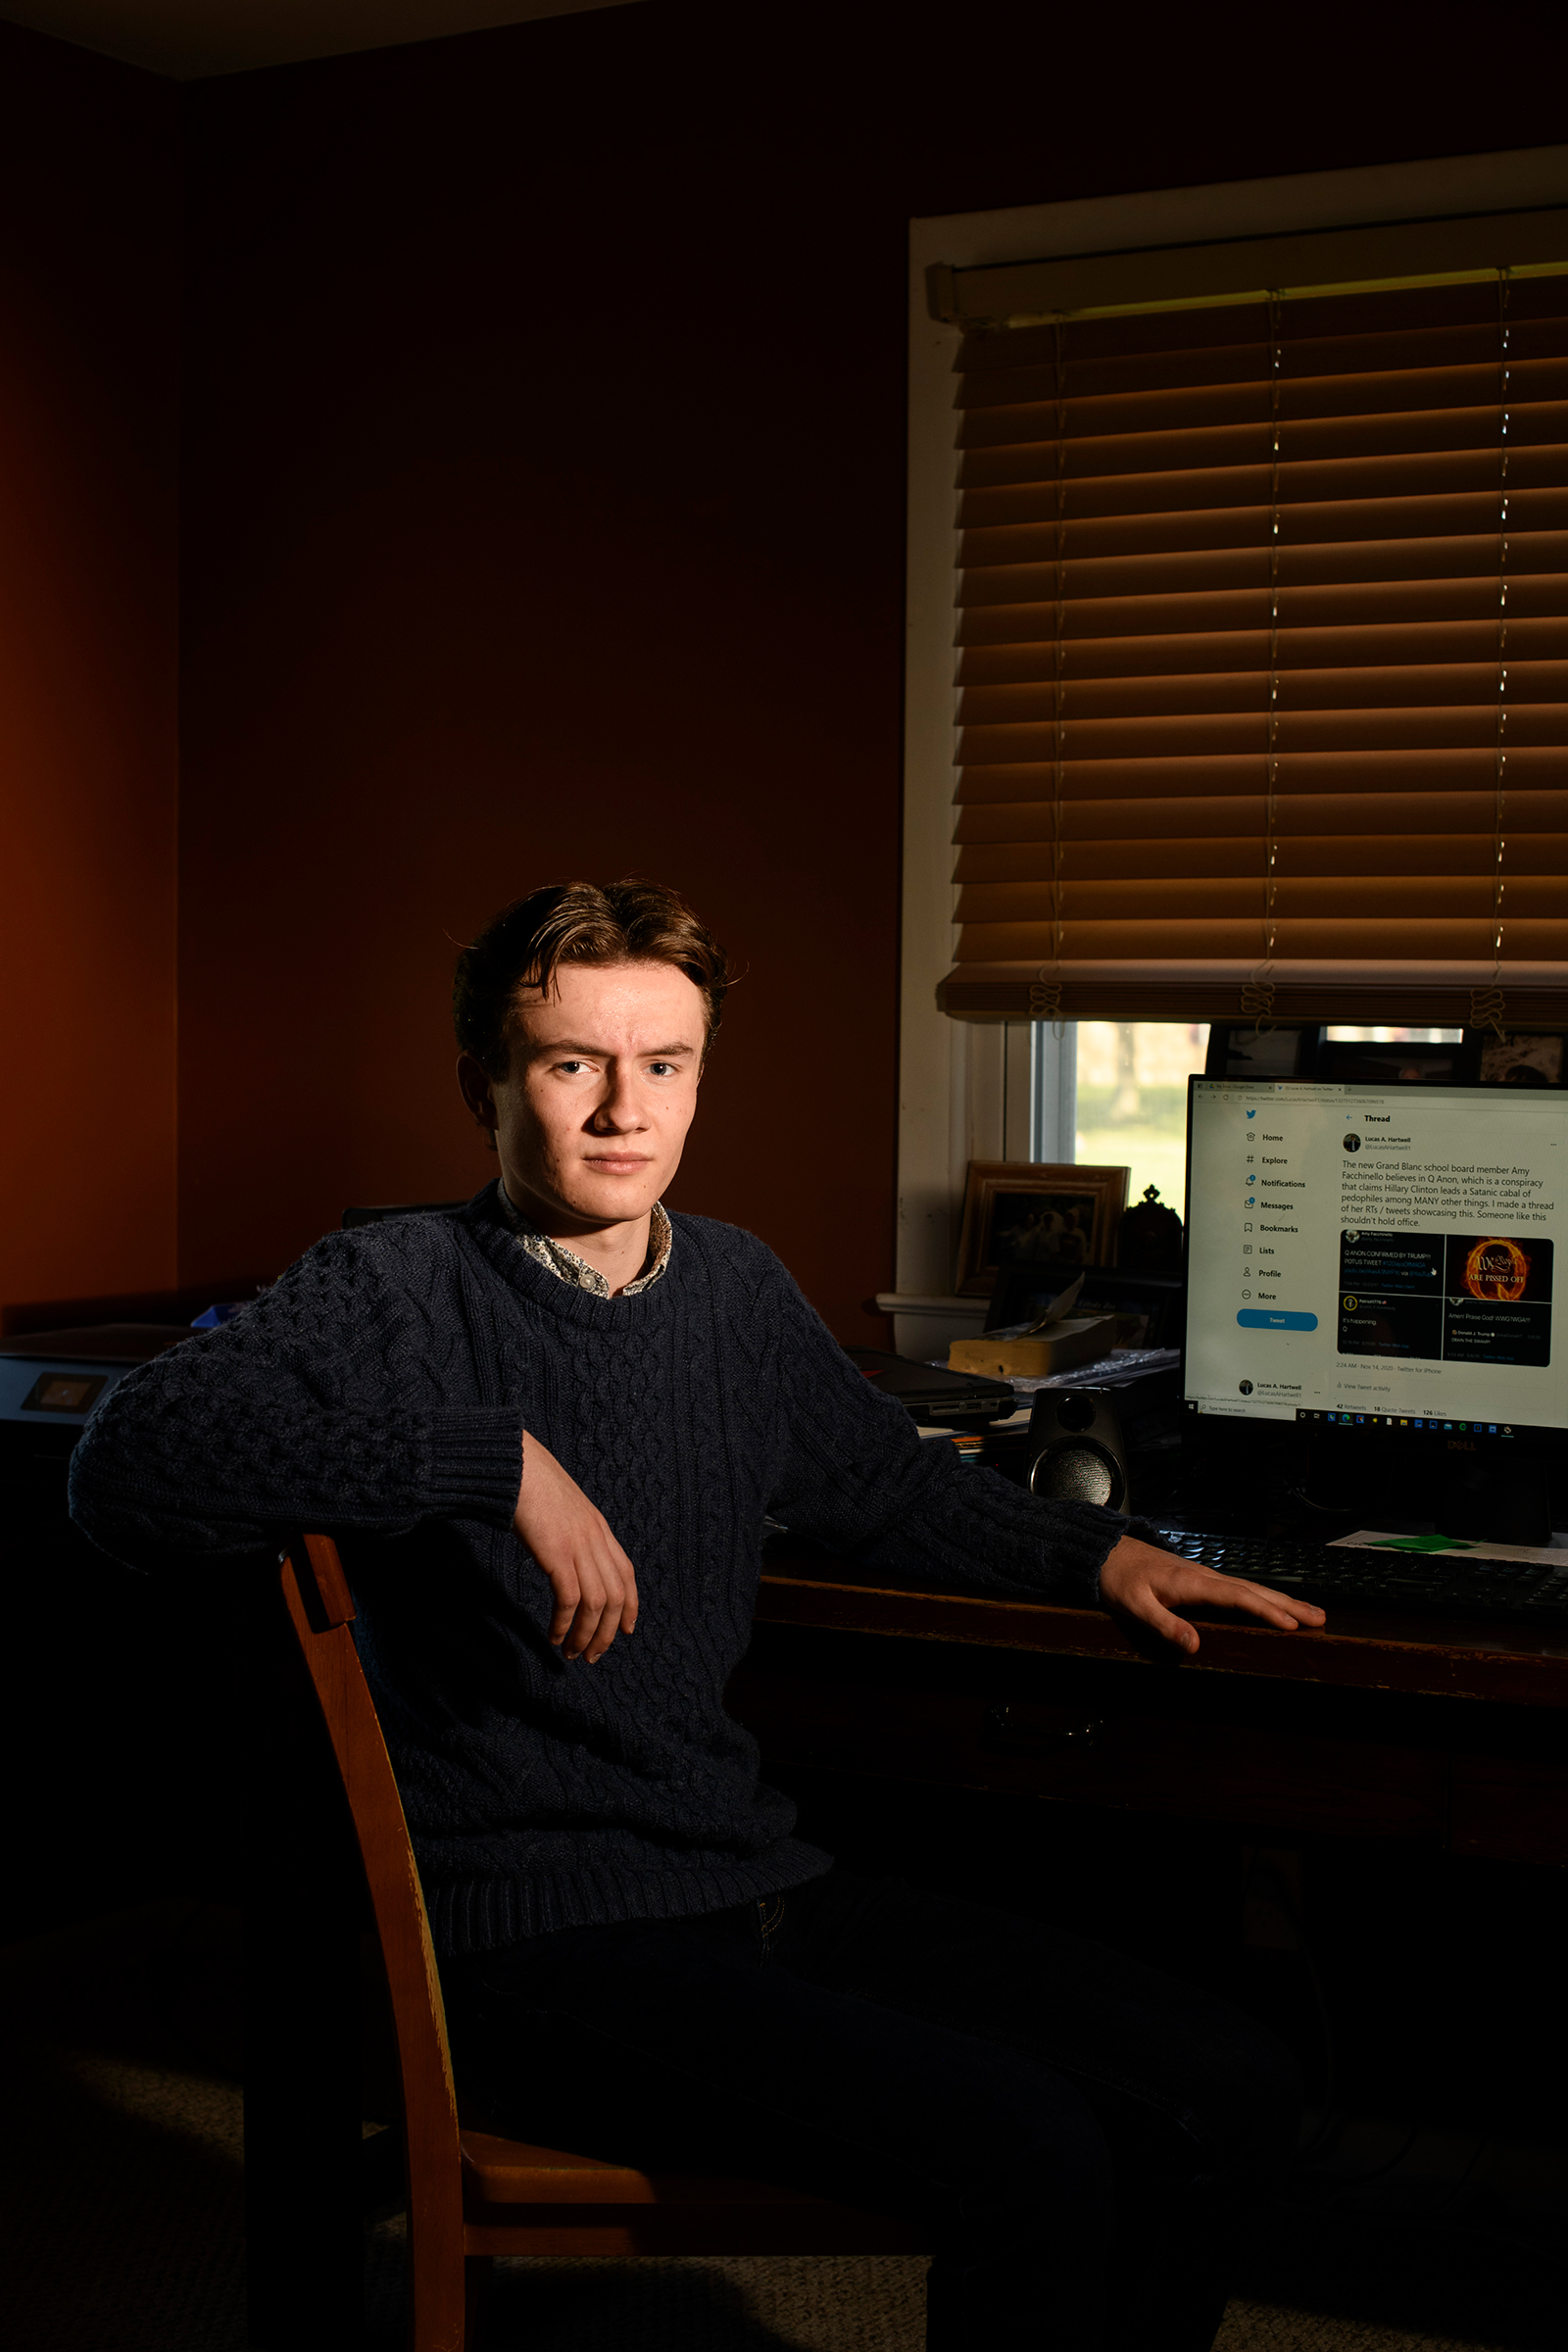 Lucas Hartwell, a senior at Grand Blanc Community High School, in the room he uses as his work space in Grand Blanc, Mich.